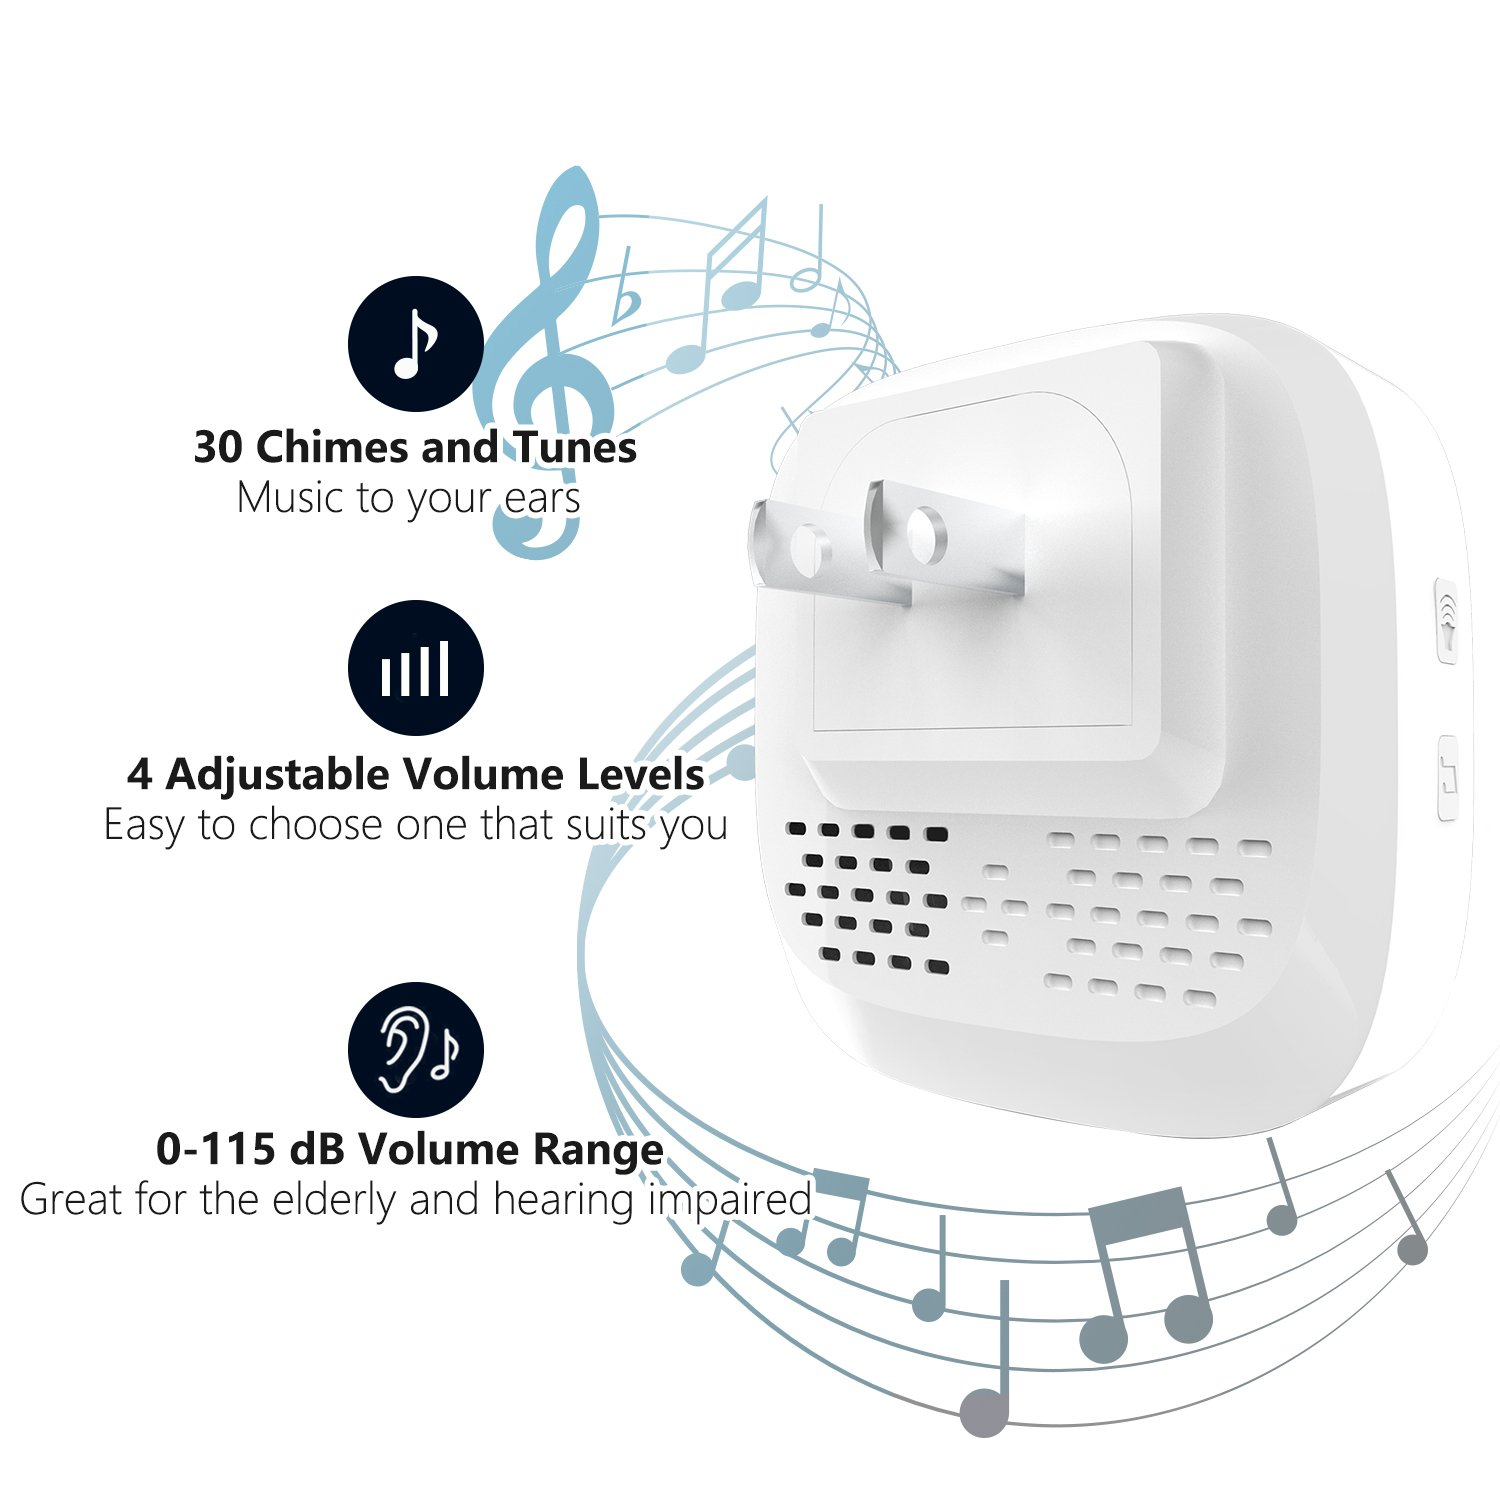 Wireless Doorbell,Rtaneey IP44 Waterproof Door Chime Kit Operating at Over 1476 ft with 2 Plug-In Receivers,30 Melodies,4 Level Volume,LED Indicators,Easy Set Up for Home and Office by Rtaneey (Image #2)